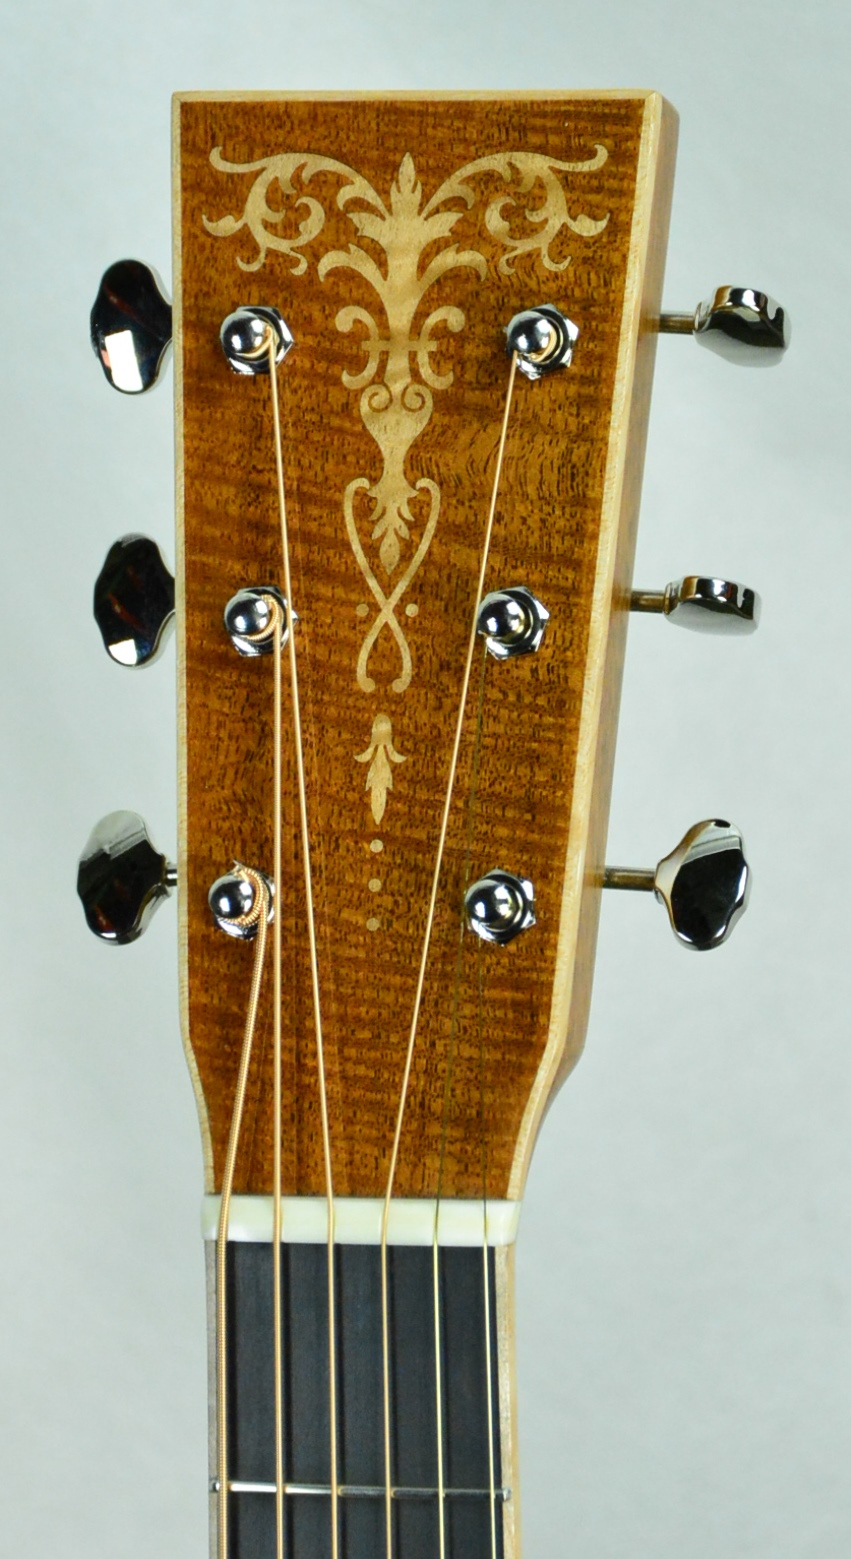 Q-2499624 S-1880673 OM Fiddleback TBS Maple inlay (4).JPG